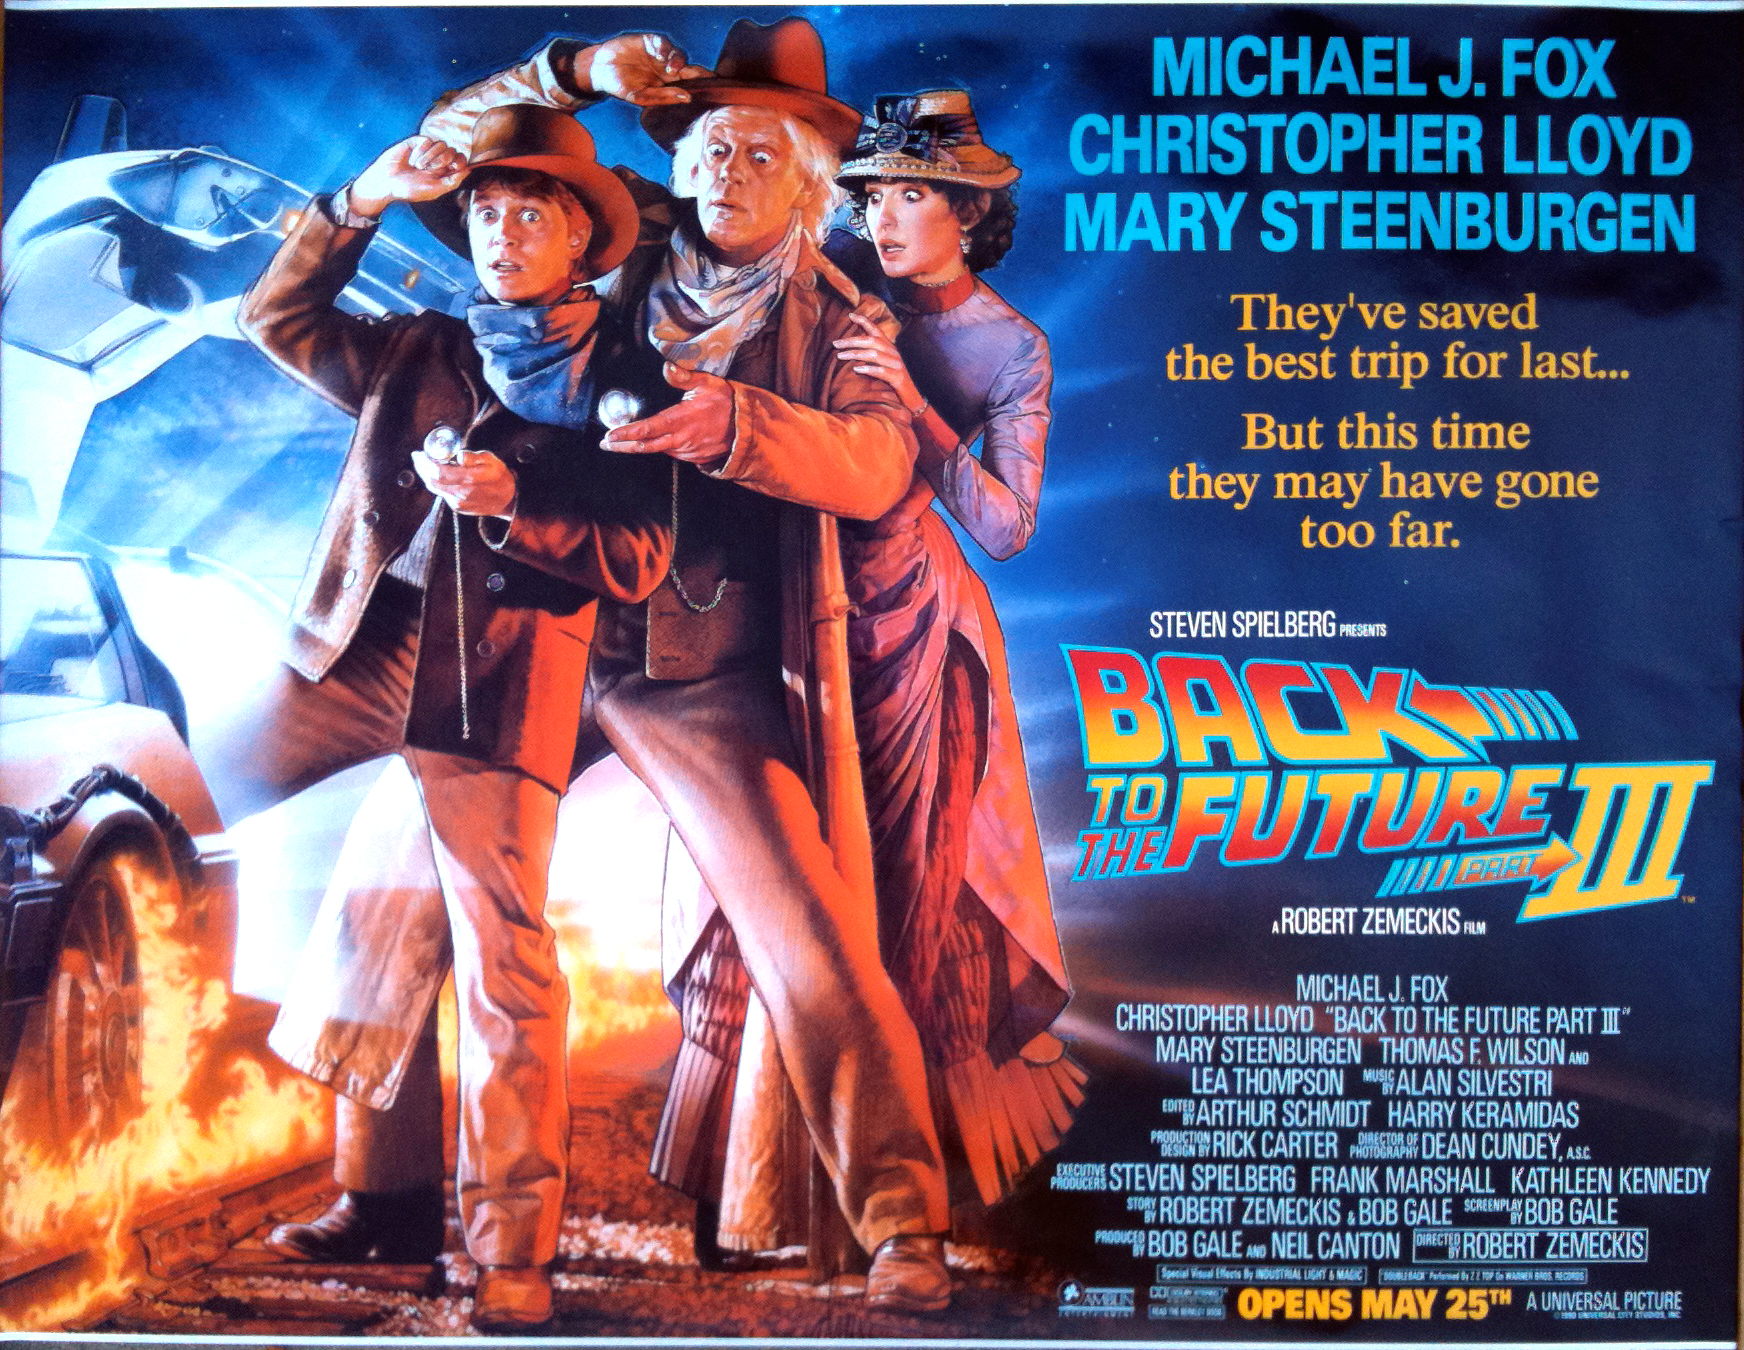 a review of back to the future a classic movie by robert zemeckis Movie reviews and classic movie lists lists film lists all 18 robert zemeckis movies ranked from worst to best including the back to the future.